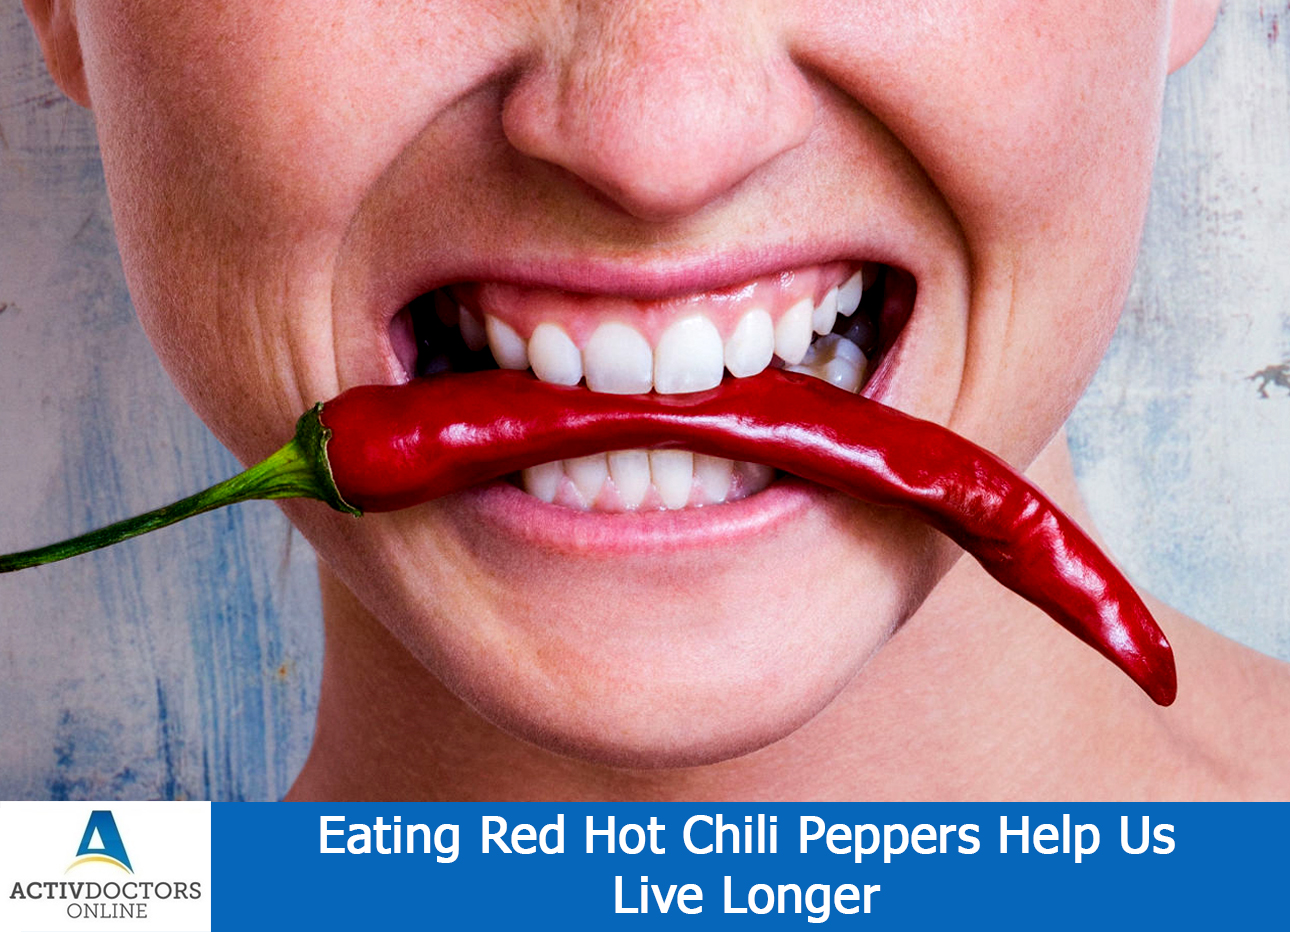 Eating Red Hot Chili Peppers Help Us Live Longer